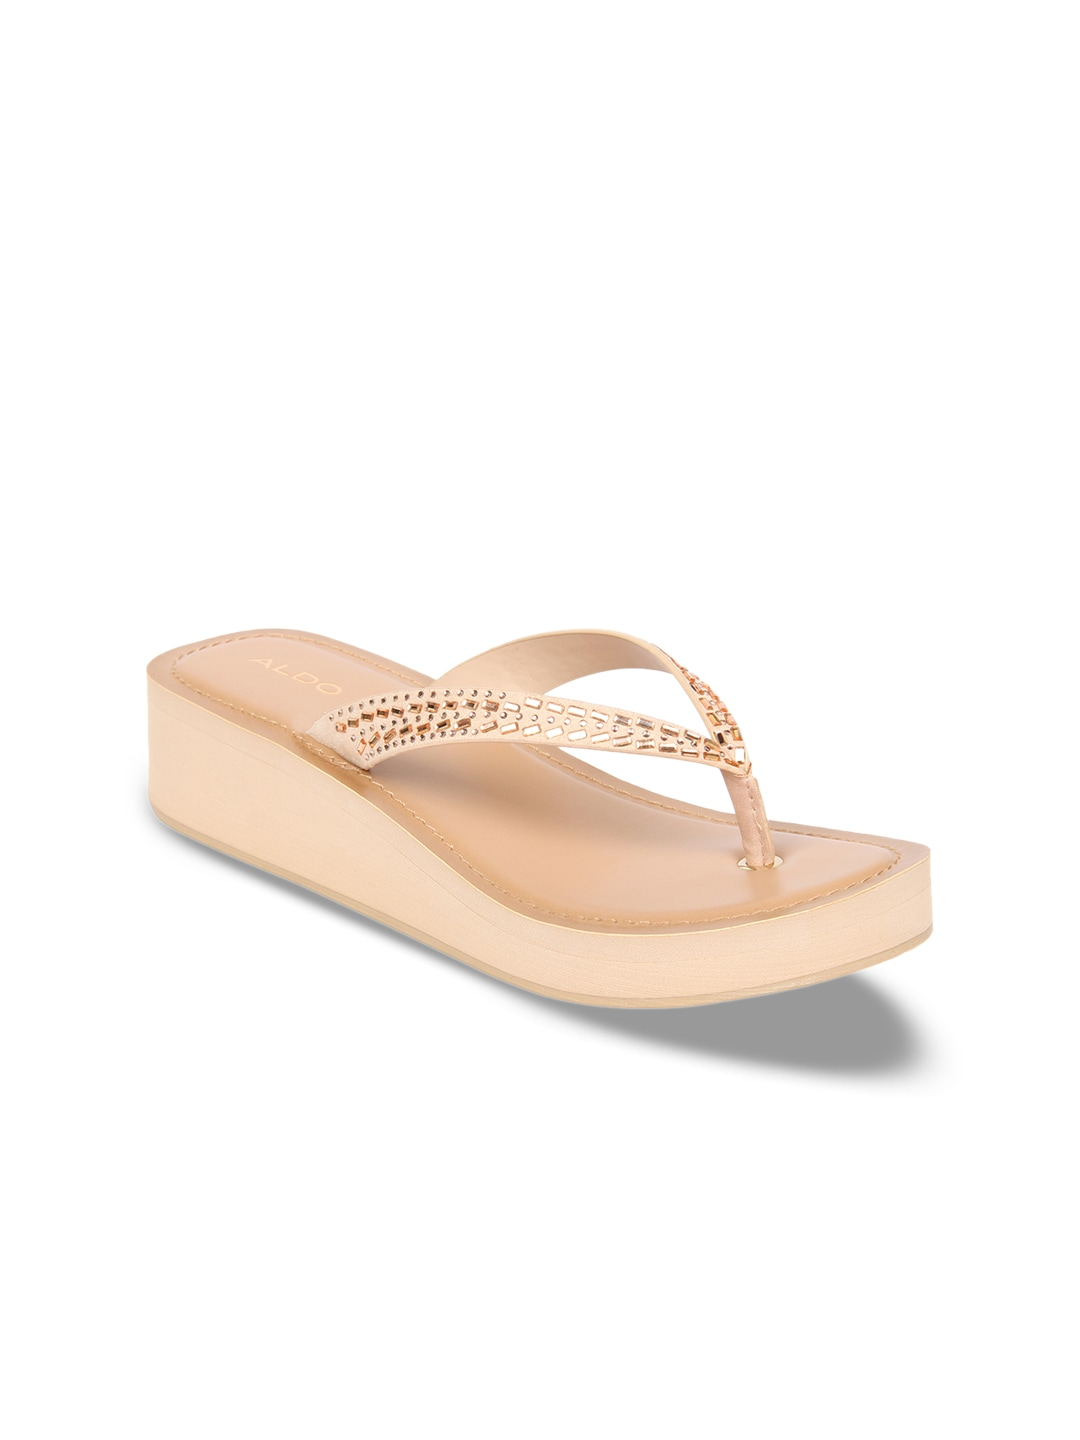 aad856970538 ALDO Shoes - Buy Shoes from ALDO Online Store in India